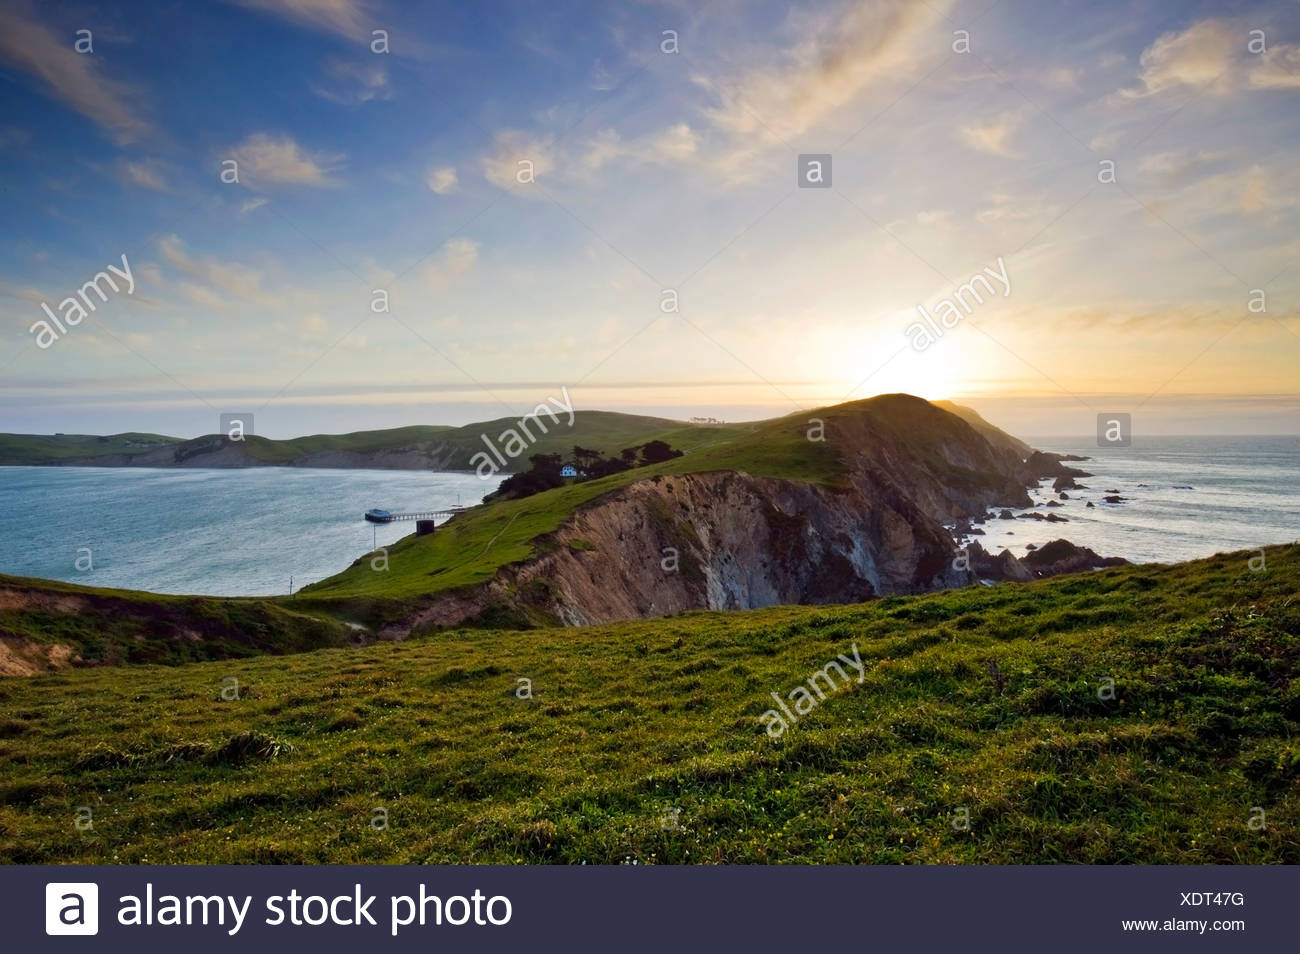 Point Reyes National Seashore at sunset on the northern California coast, USA. - Stock Image